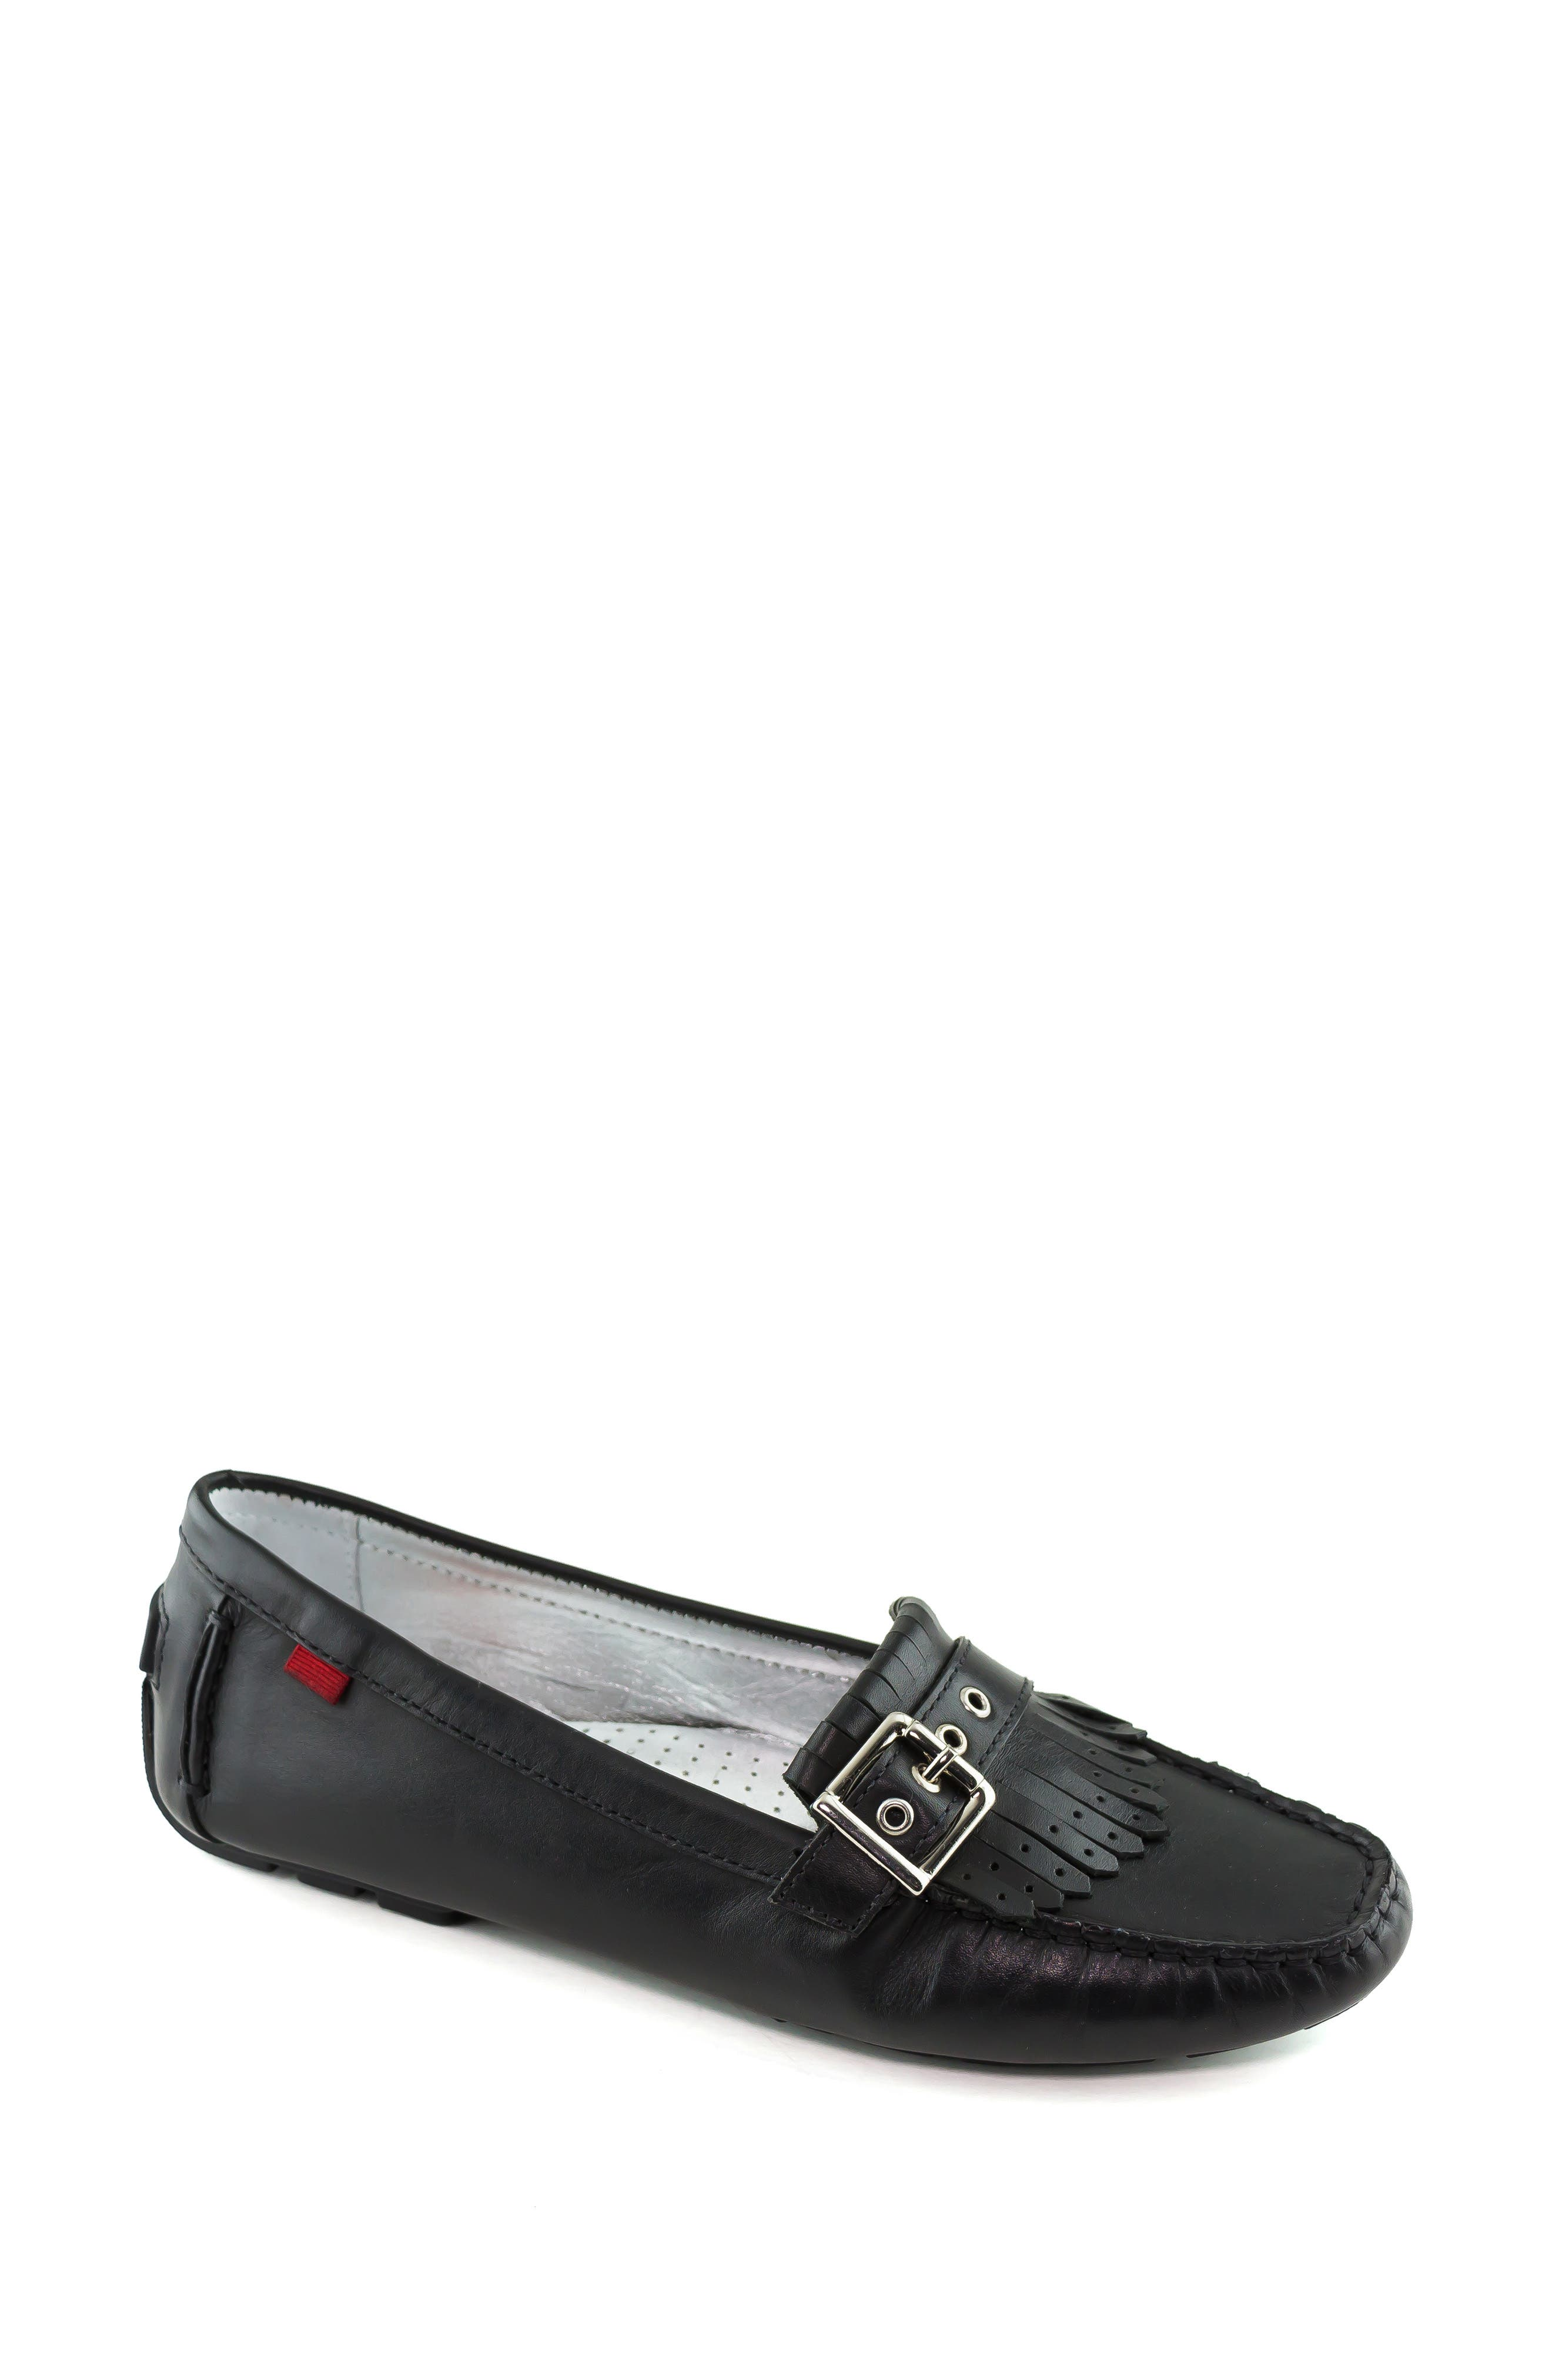 MARC JOSEPH NEW YORK South Street Loafer, Main, color, BLACK LEATHER